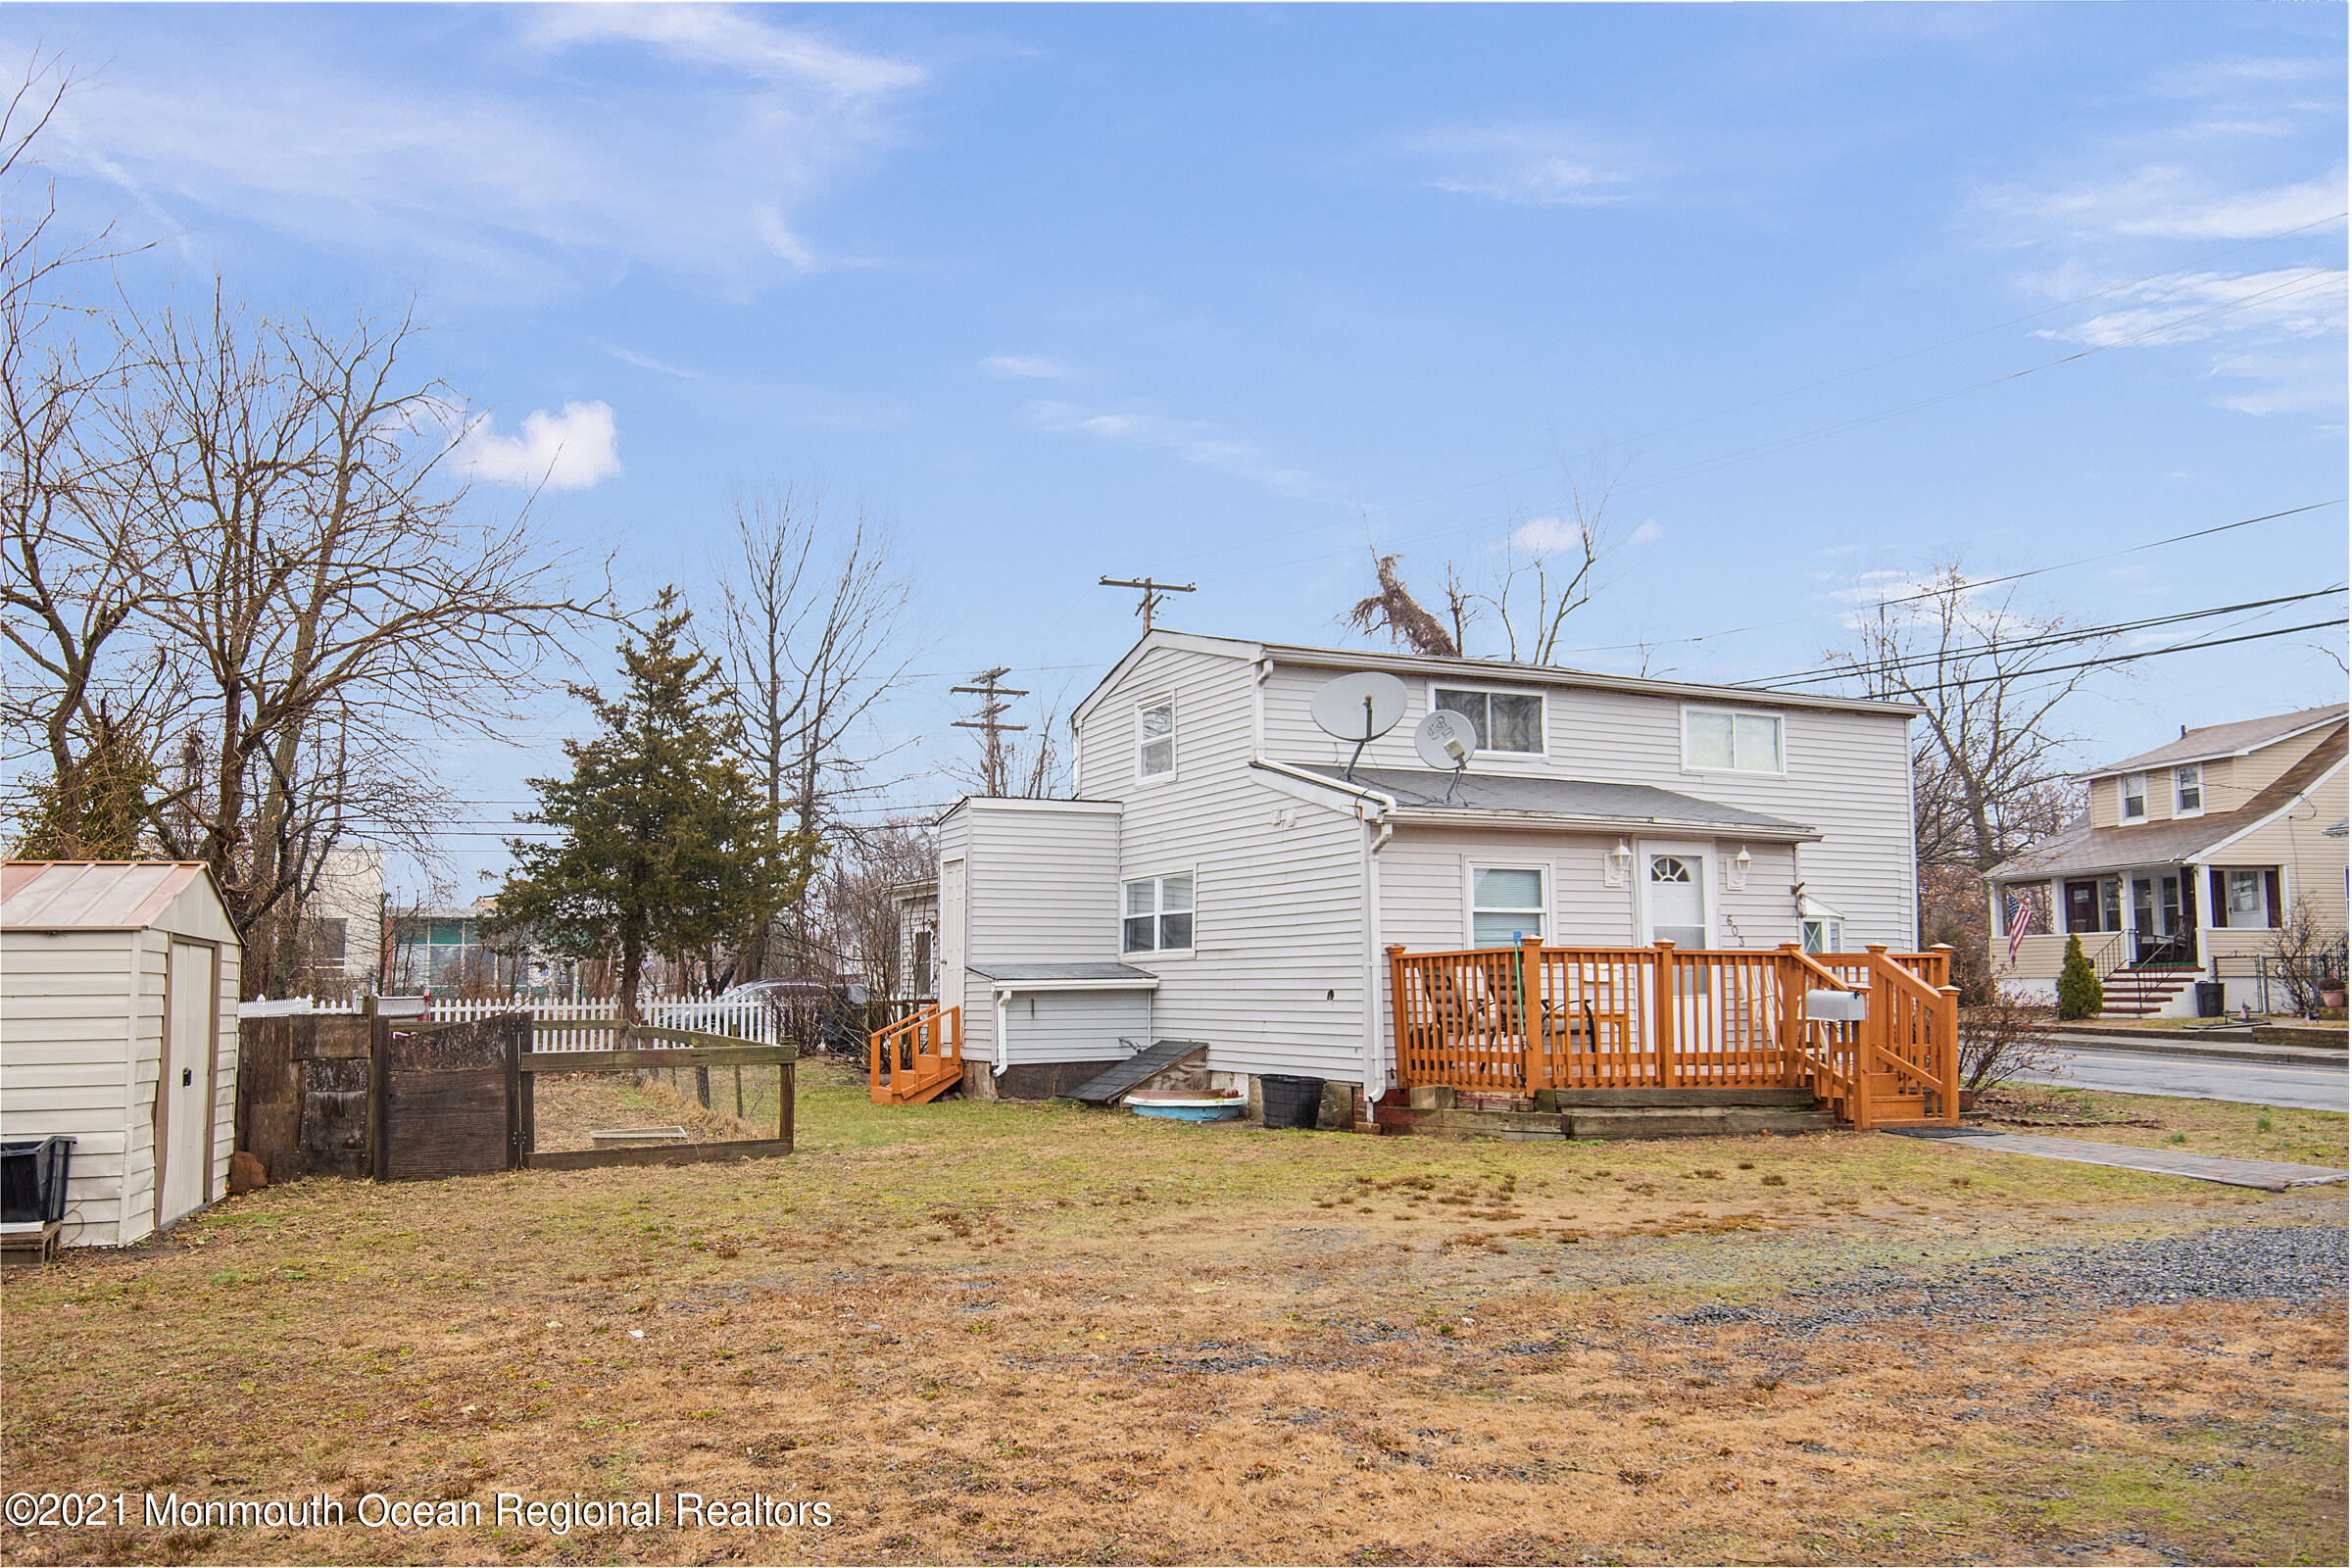 603 Poole Avenue, Union Beach, New Jersey 07735, 3 Bedrooms Bedrooms, ,1 BathroomBathrooms,Single Family,For Sale,603 Poole Avenue,2,22108508